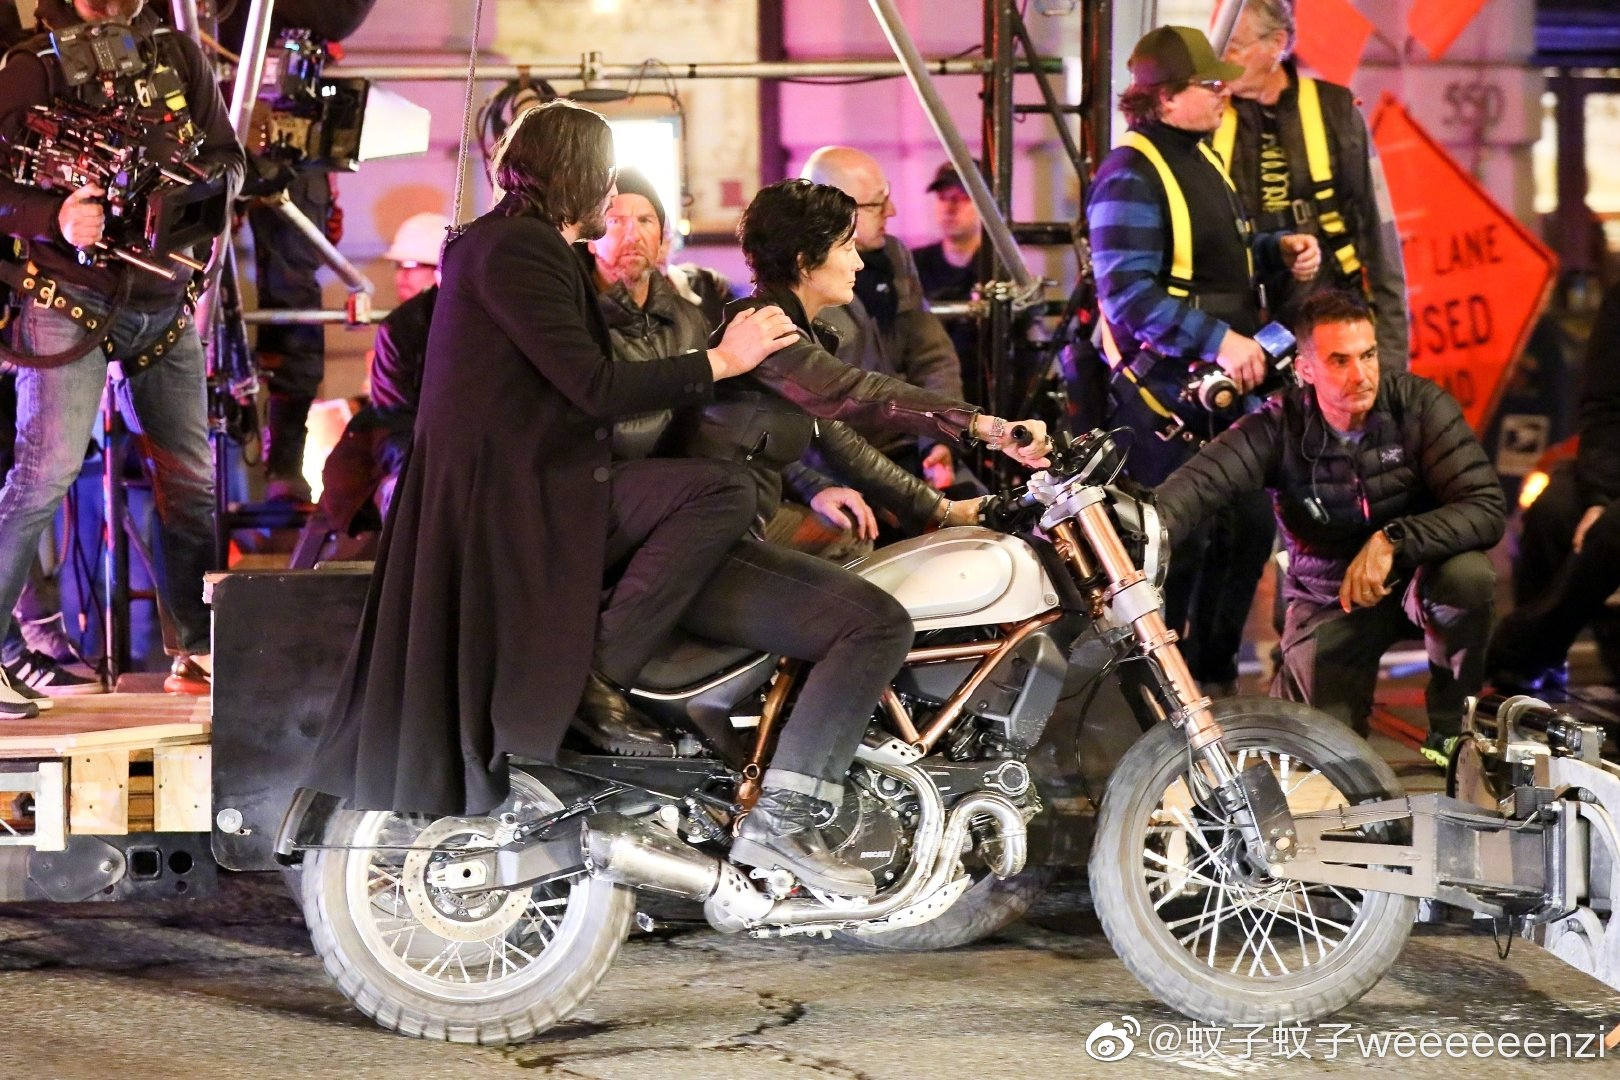 Matrix 4 Set Photo 09 Keanu Reeves Carrie Anne Moss